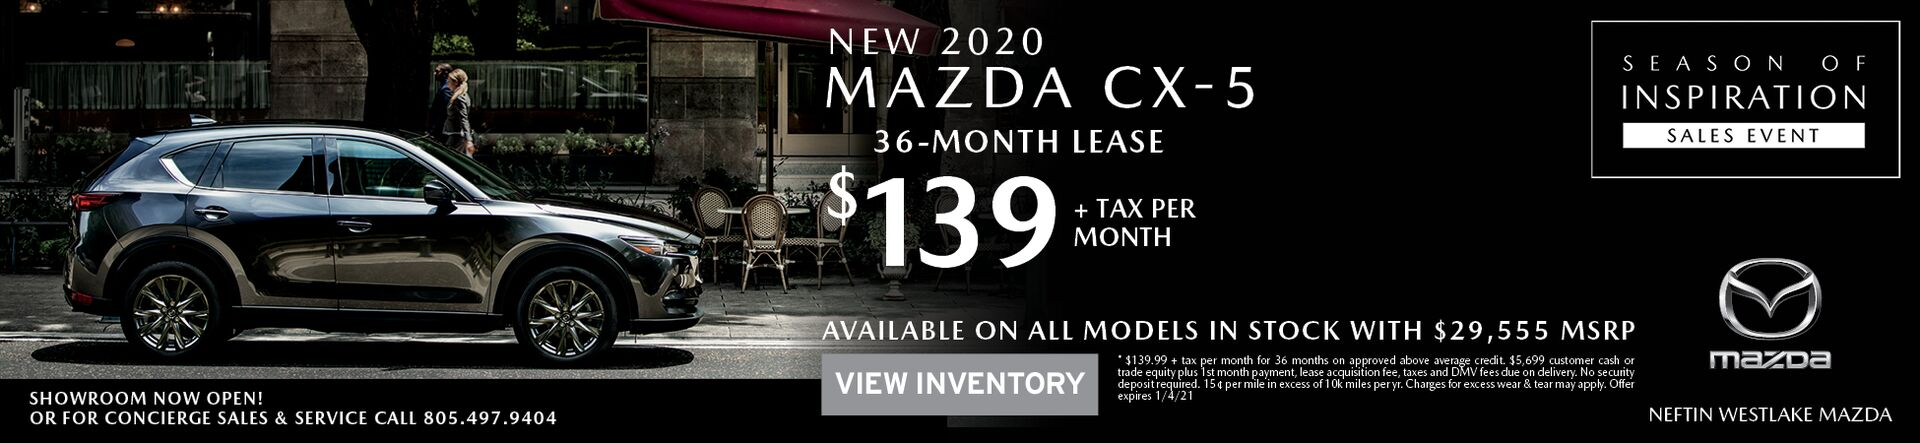 December '20 Mazda CX-5 Lease Offer